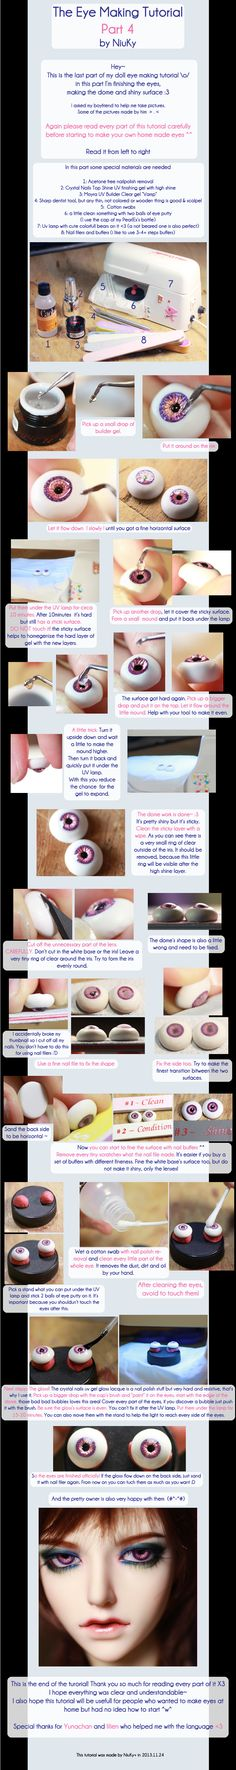 So, i'm making eyes, but don't accept international commissions. I got many requests to do this tutorial. Since i haven't seen any doll eye making. The Eye Making Tutorial Sculpting Tutorials, Doll Making Tutorials, Clay Tutorials, Art Doll Tutorial, Eye Tutorial, Bjd Doll, Ooak Dolls, Art Dolls, Doll Crafts